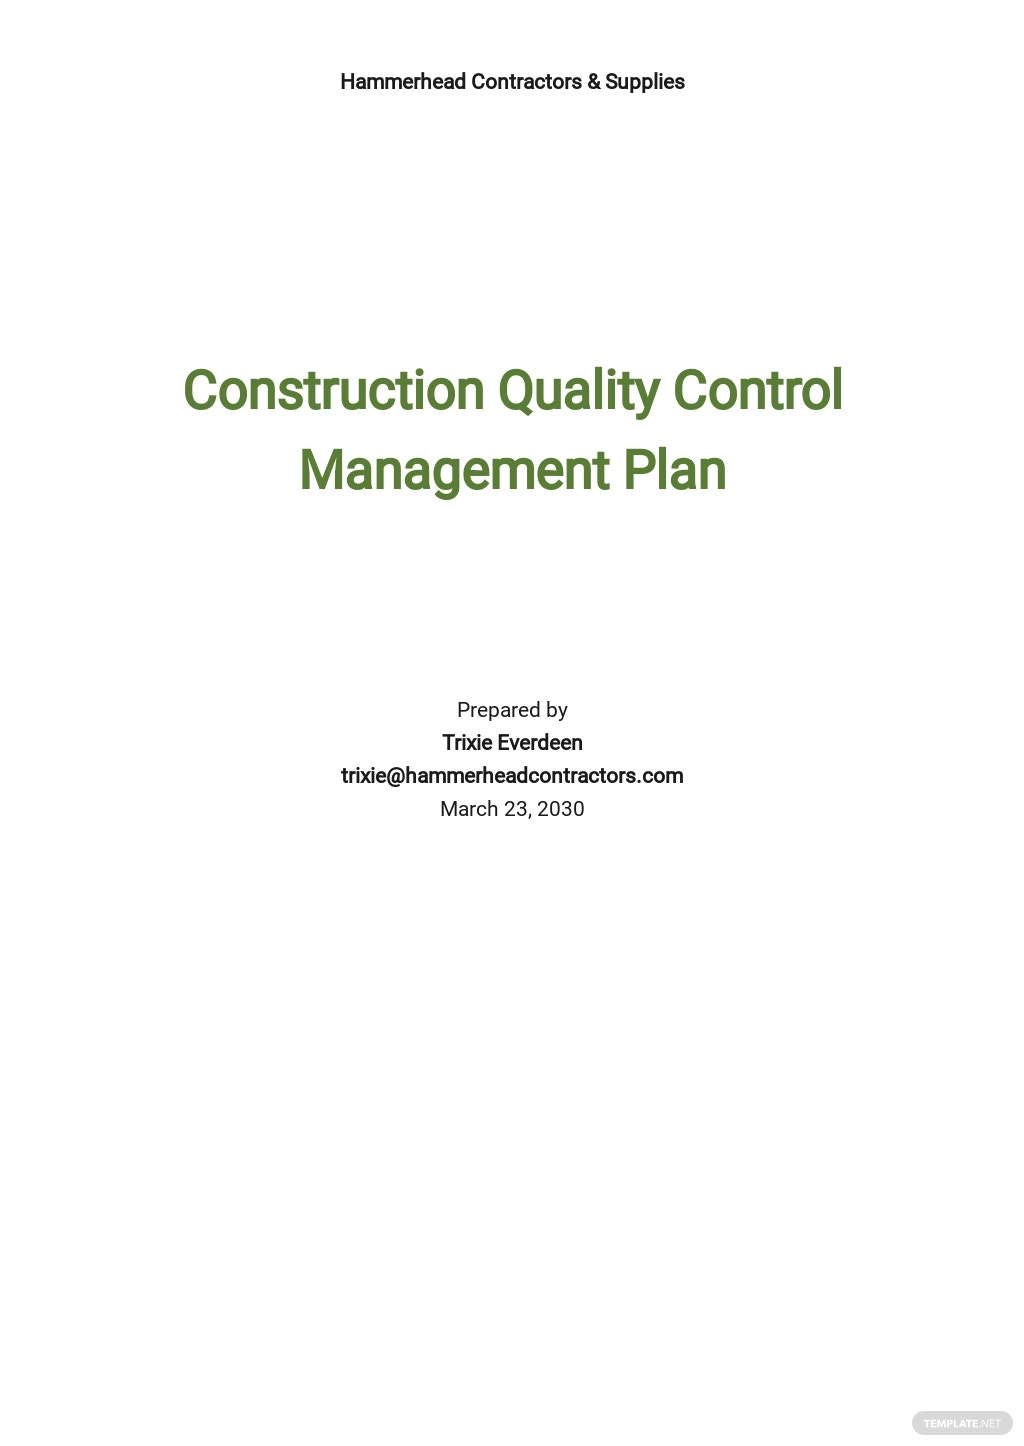 Construction Quality Control Management Plan Template